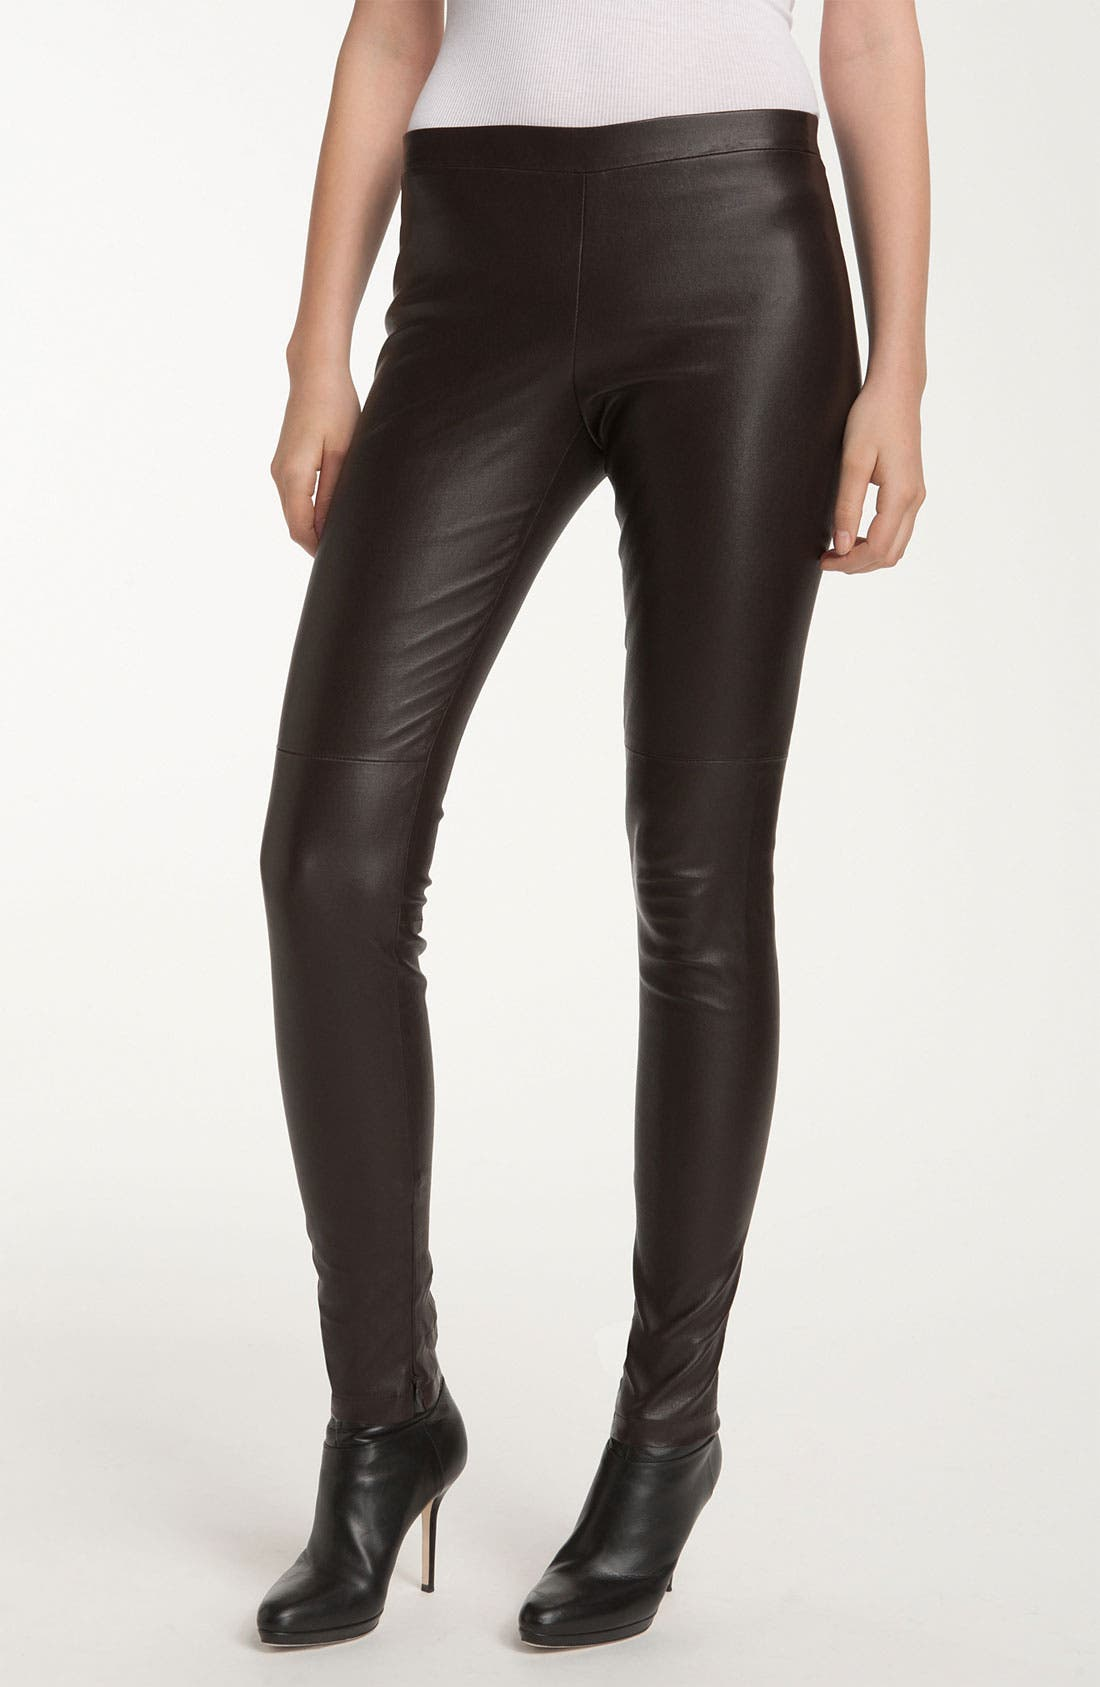 Main Image - Vince Ankle Zip Leather Legging